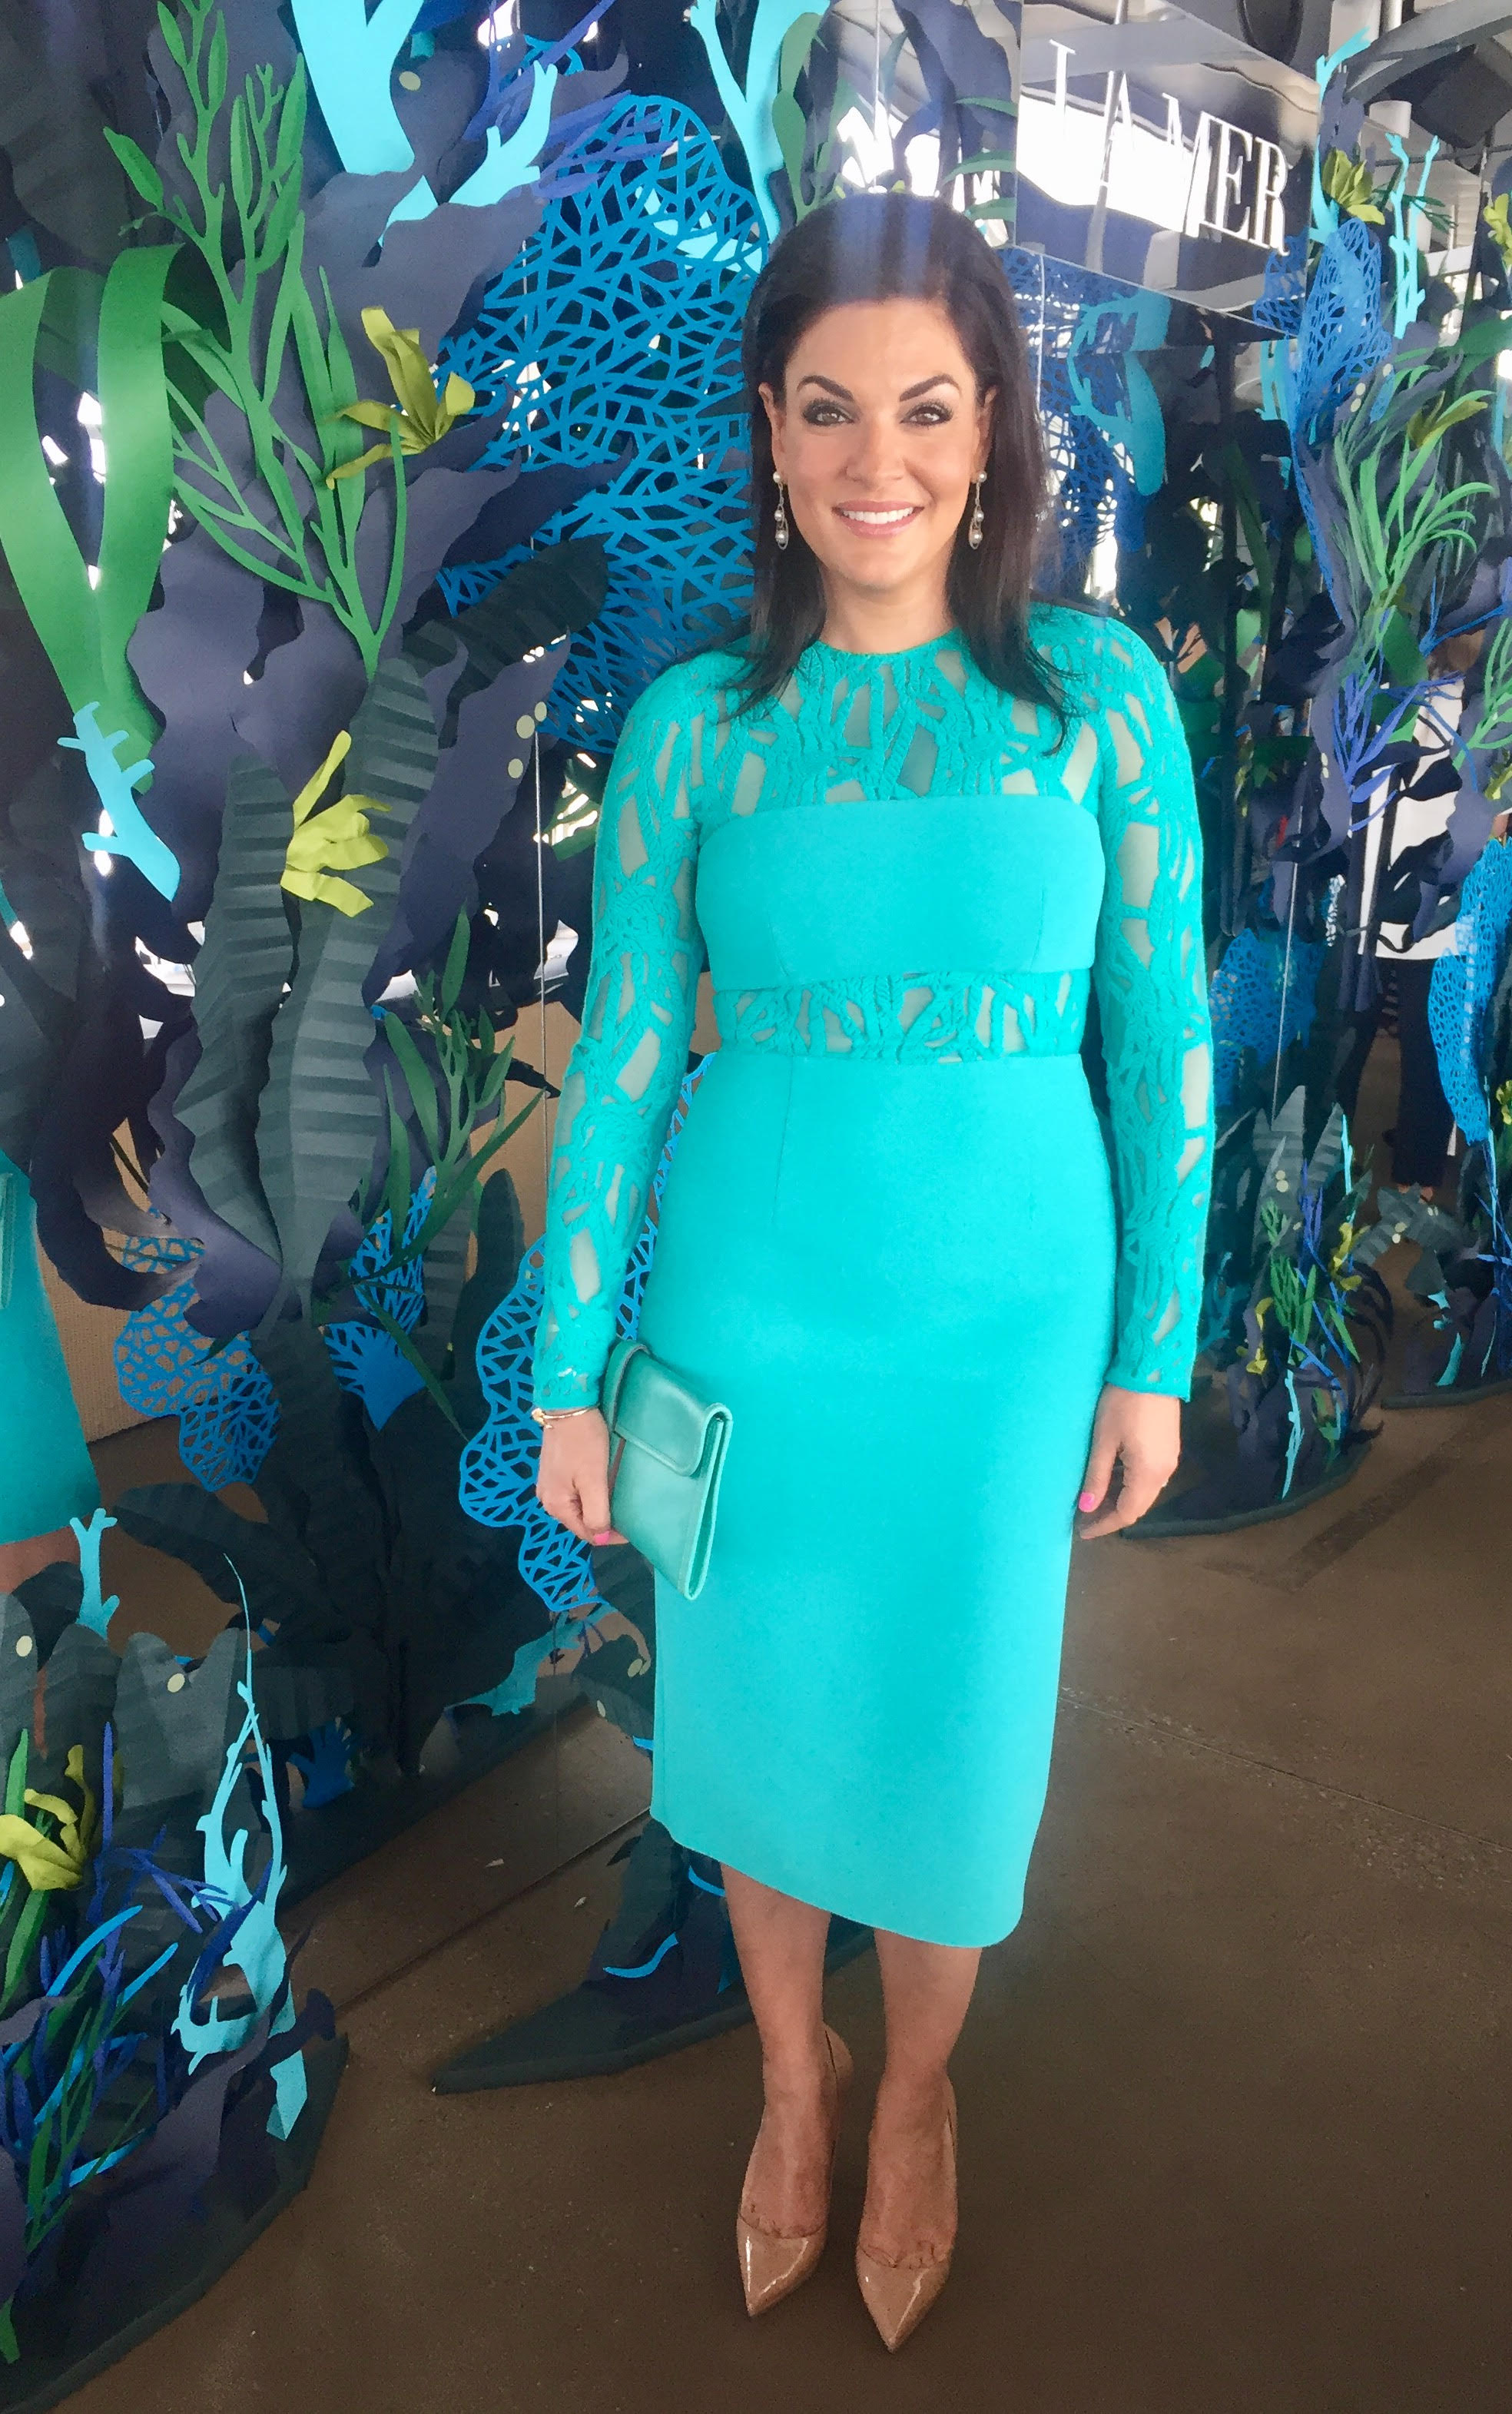 Get the Look: Aqua Cocktail Dress Outfit | Find out what Nicole O'Neil from The Real Housewives of Sydney wore for La Mer's World Oceans Day Blue Heart Event.